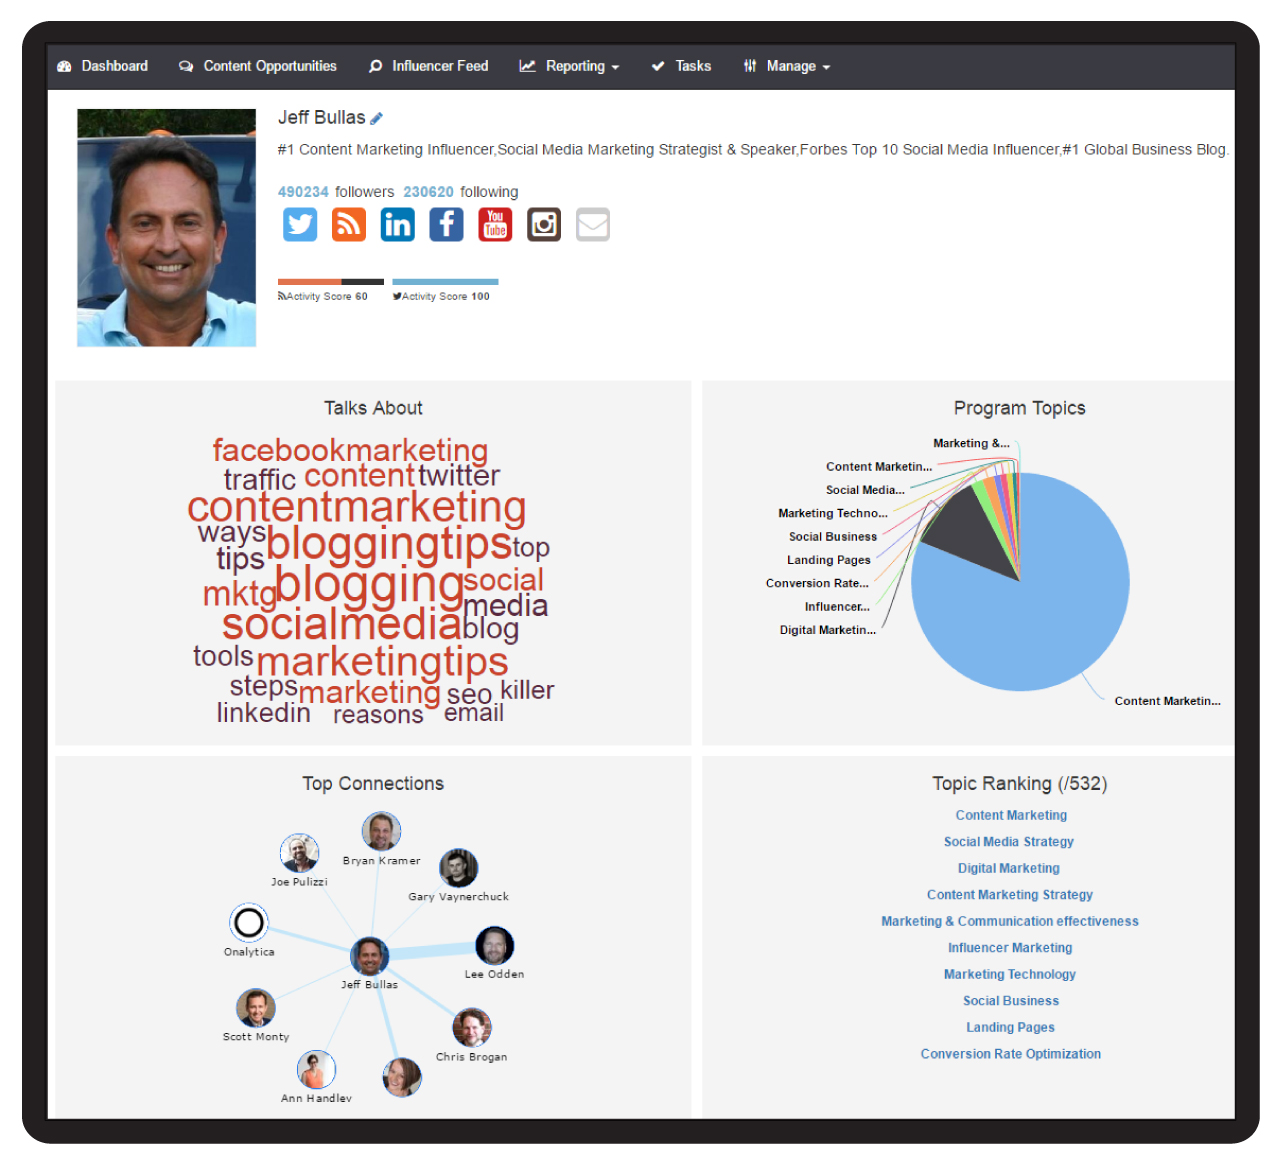 View influencer profiles to gain a deeper understanding of their topics of conversation and connections to better understand how to tailor engagements with them